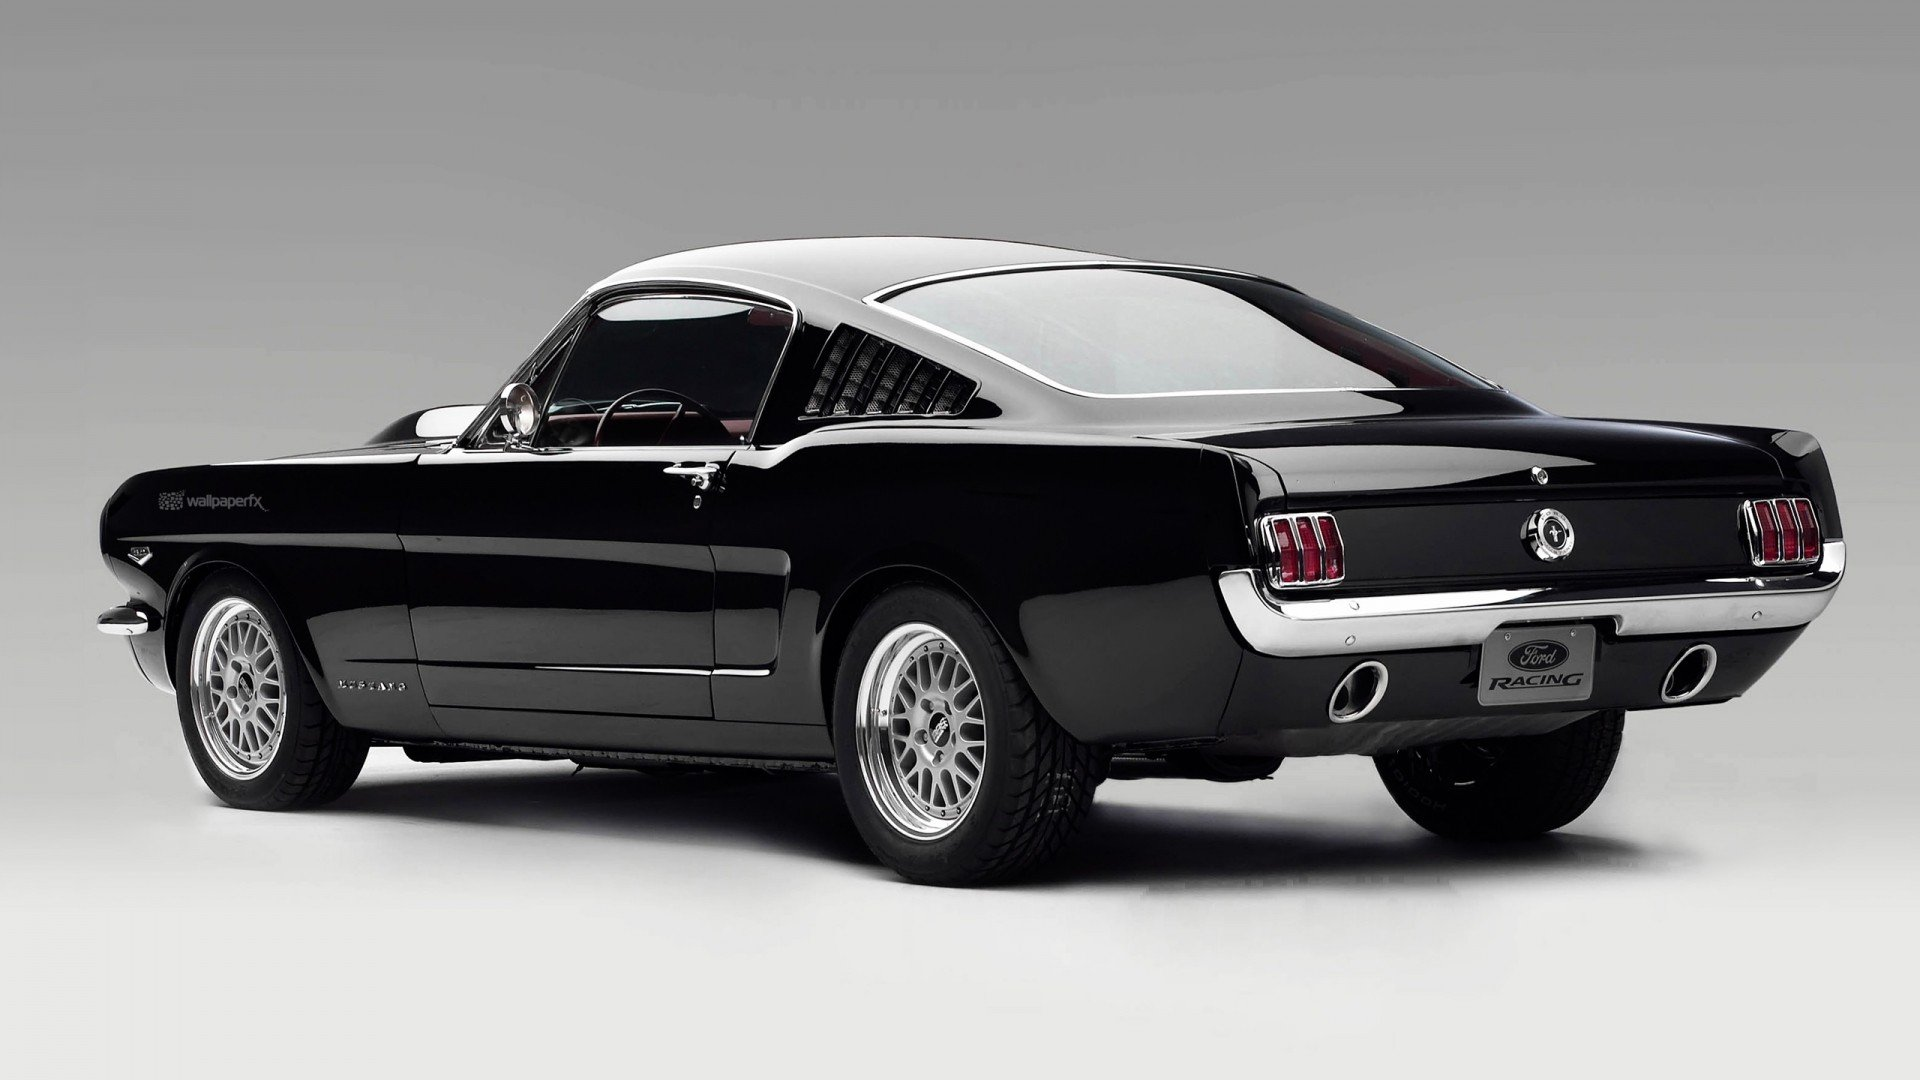 cars muscle cars classic vehicles ford mustang wheels. Black Bedroom Furniture Sets. Home Design Ideas